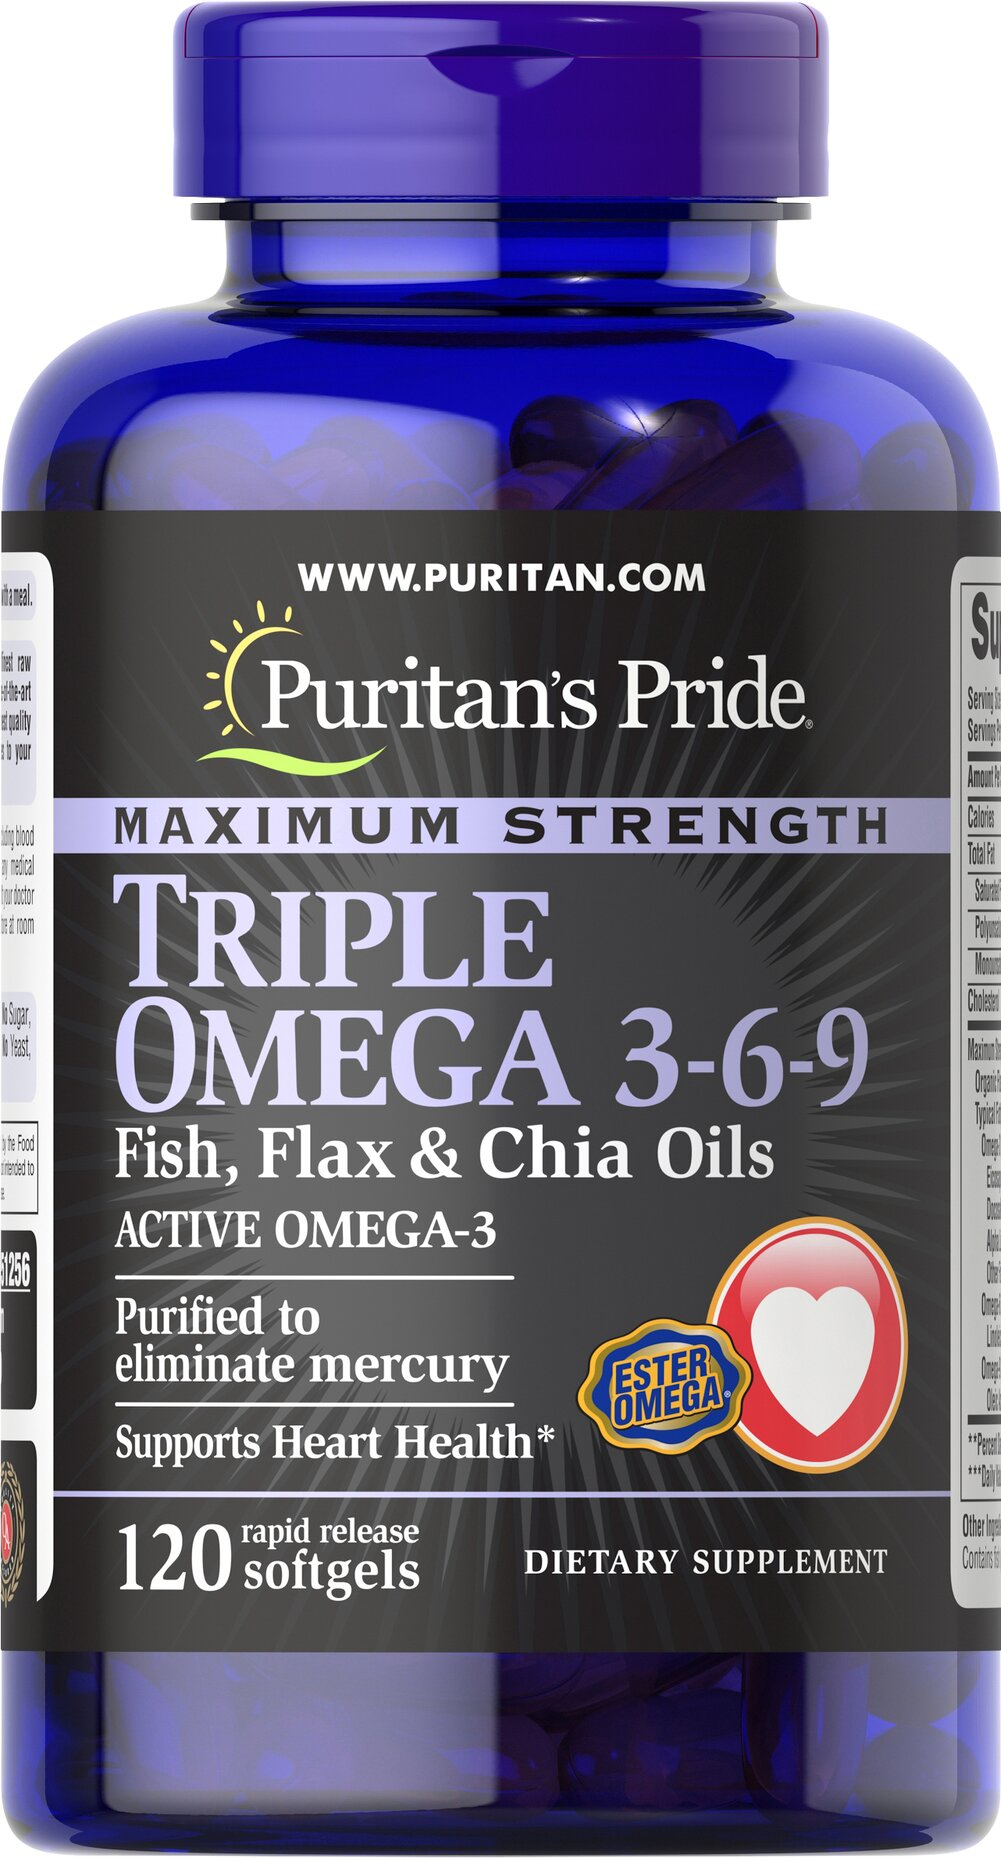 "Triple Omega 3-6-9 with Fish, Flax & Chia <p>Contains Omega-3, Omega-6 and Omega-9 – the ""good"" fats important for cellular, heart and metabolic health.**  </p><p>TRIPLE OMEGA 3-6-9 Fish and Flax Oils contain a proprietary blend of essential oils, including Flaxseed Oil,  Ester Omega Fish Oil and Chia. </p><p>Supports Heart Health.* </p><strong></strong><p><strong>Purified to eliminate mercury.</strong></p> 120 Softgels"